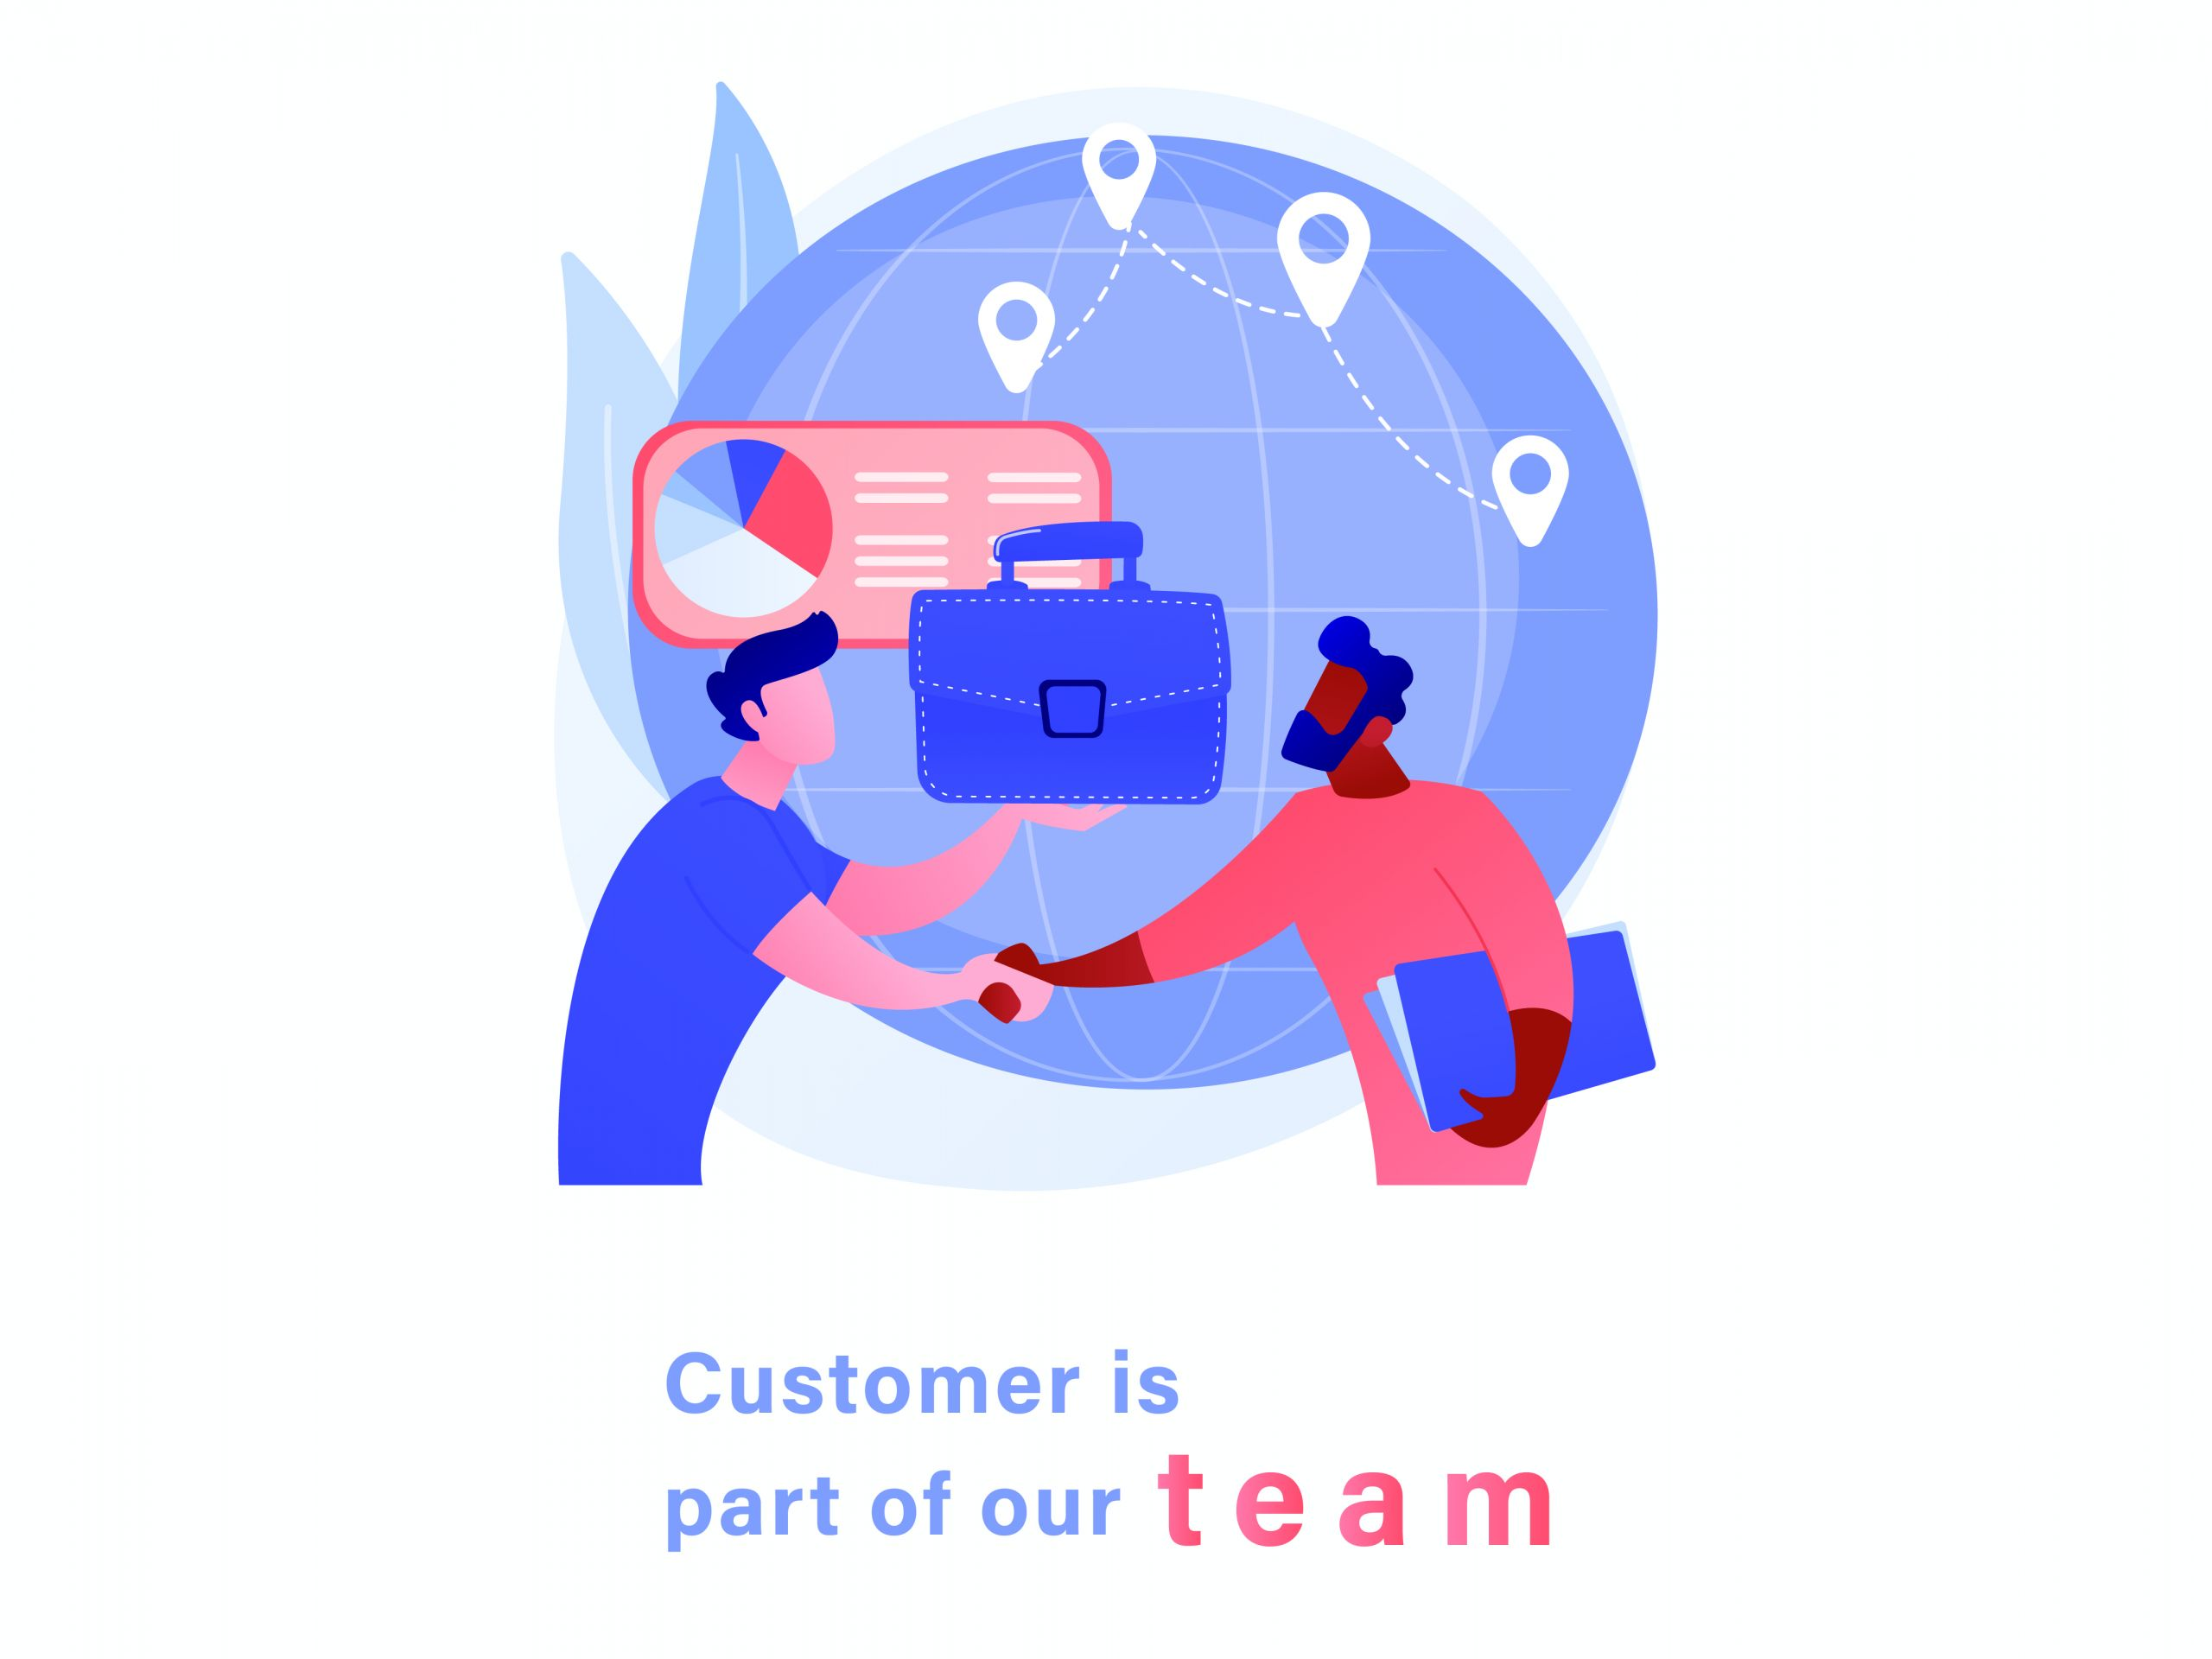 customer is part of our team